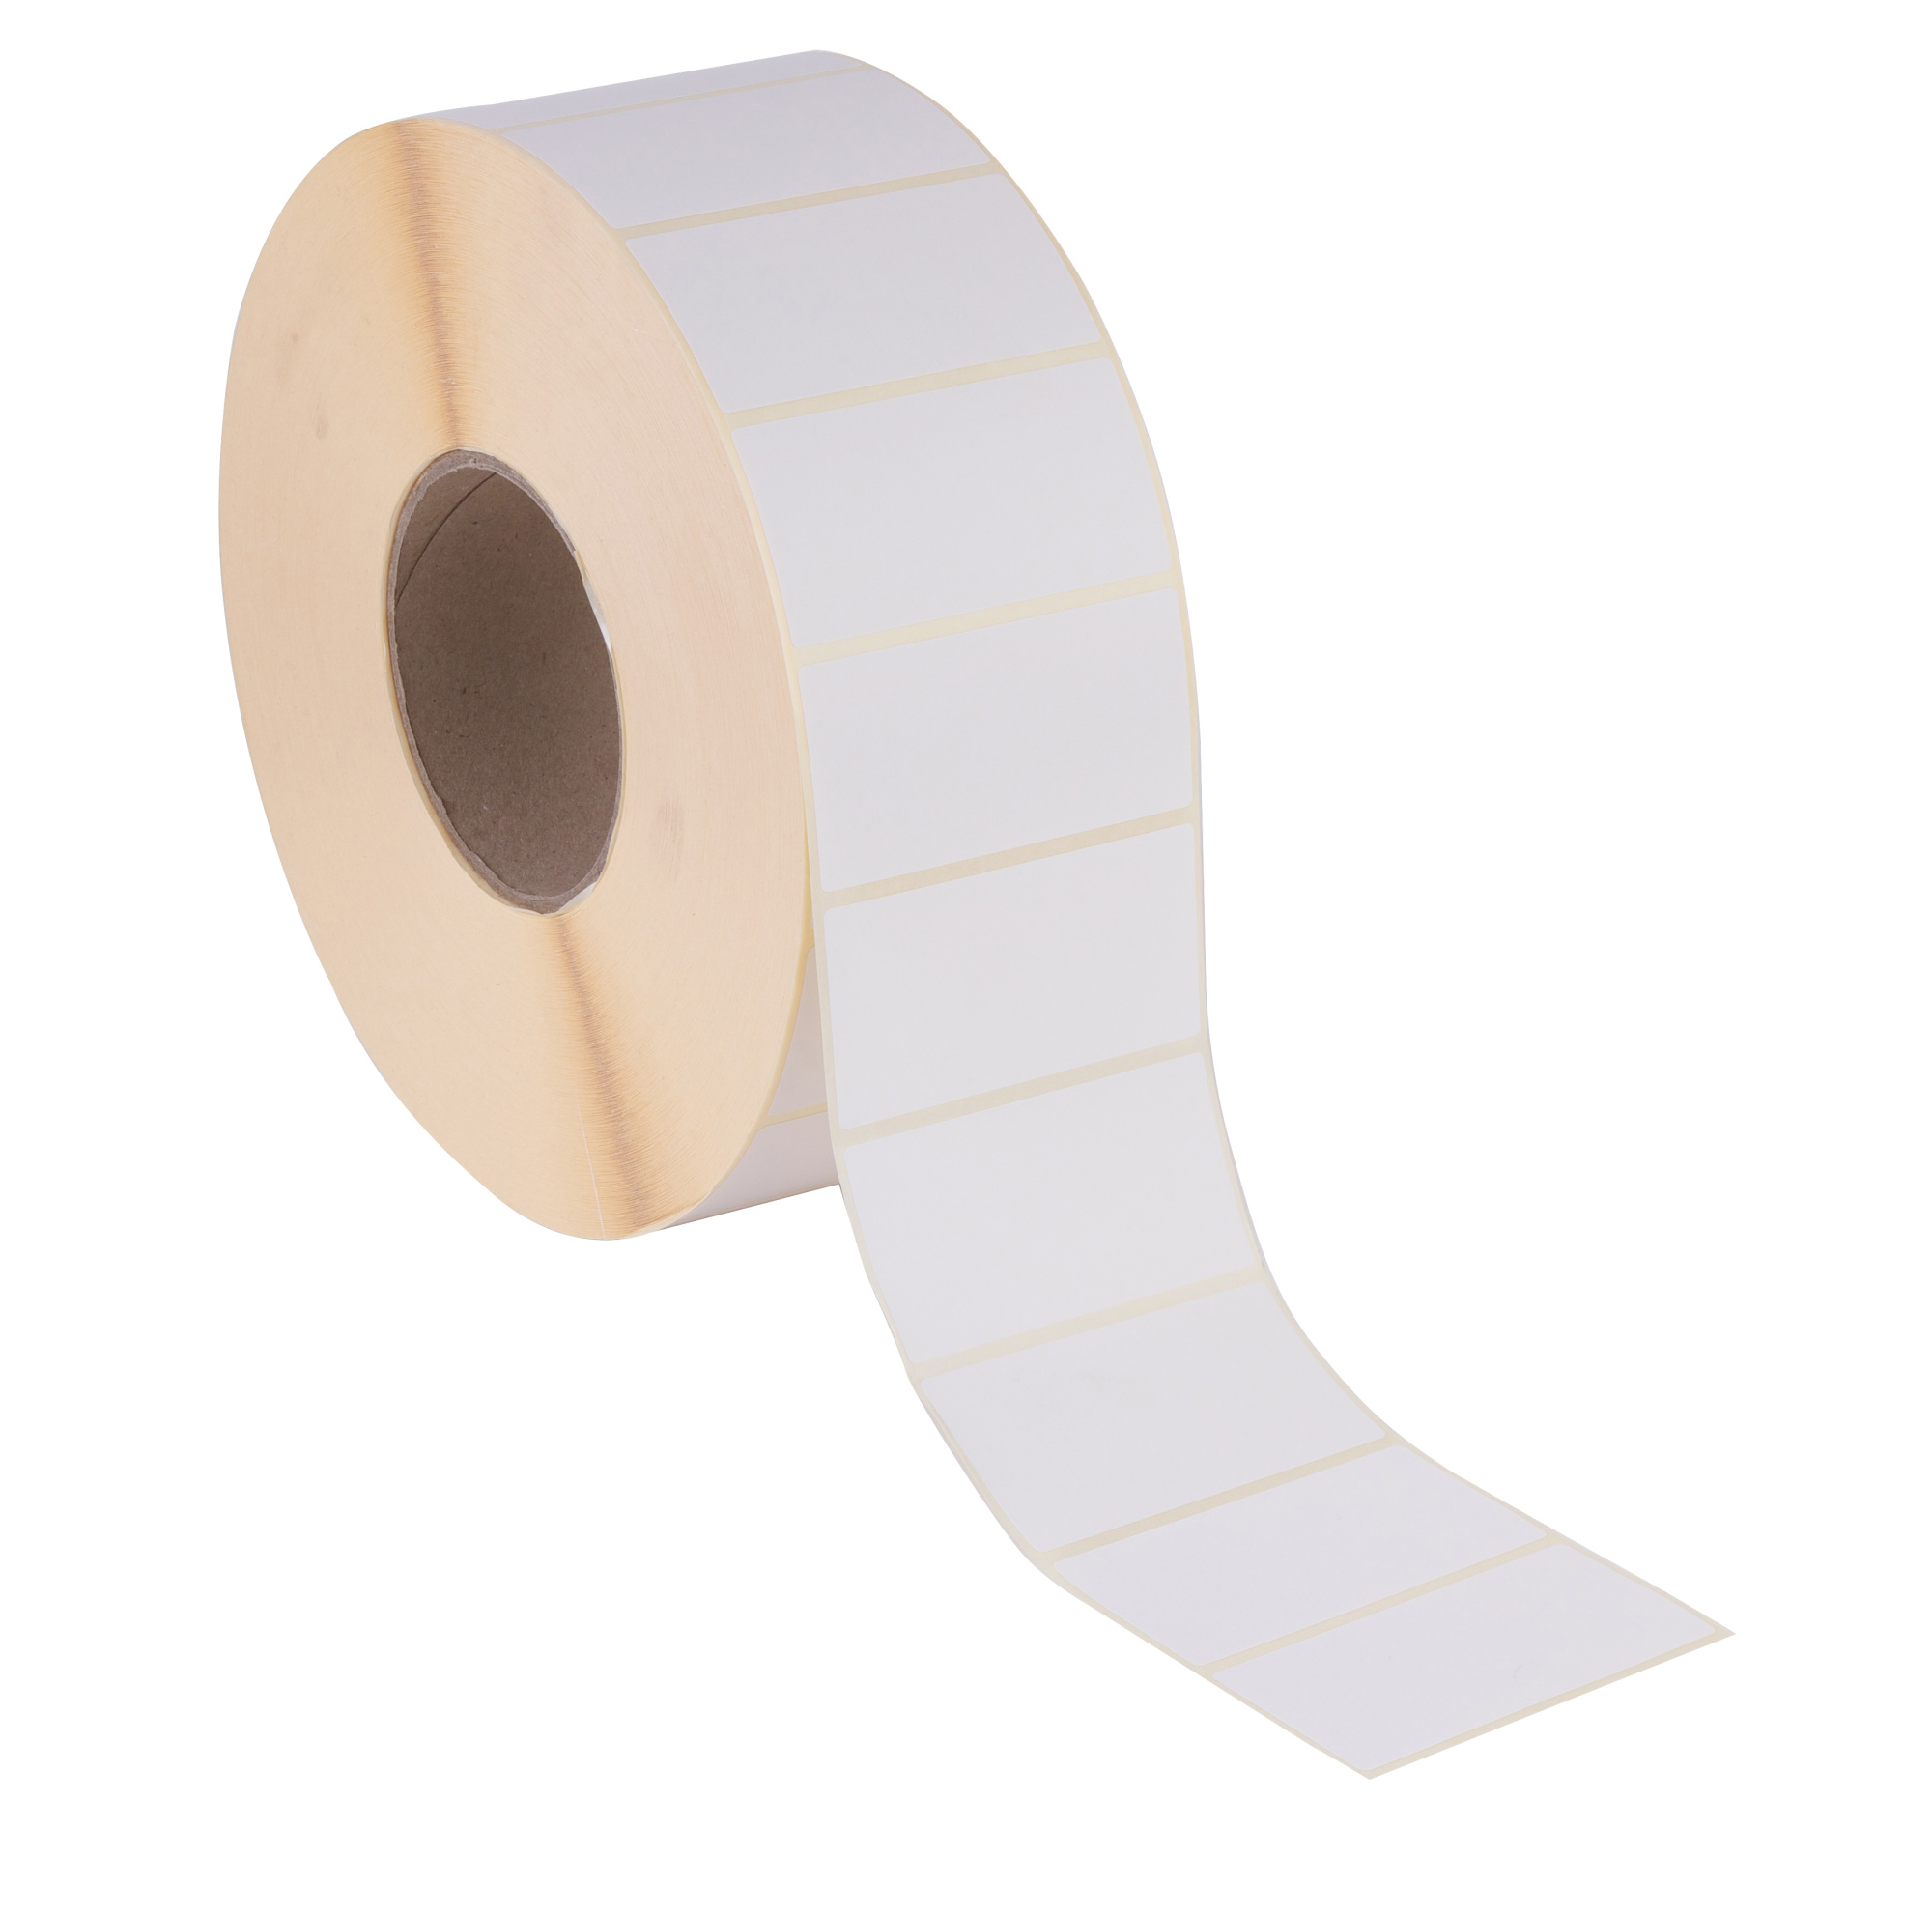 38 X 25 Plain White Thermal Direct Printer Labels